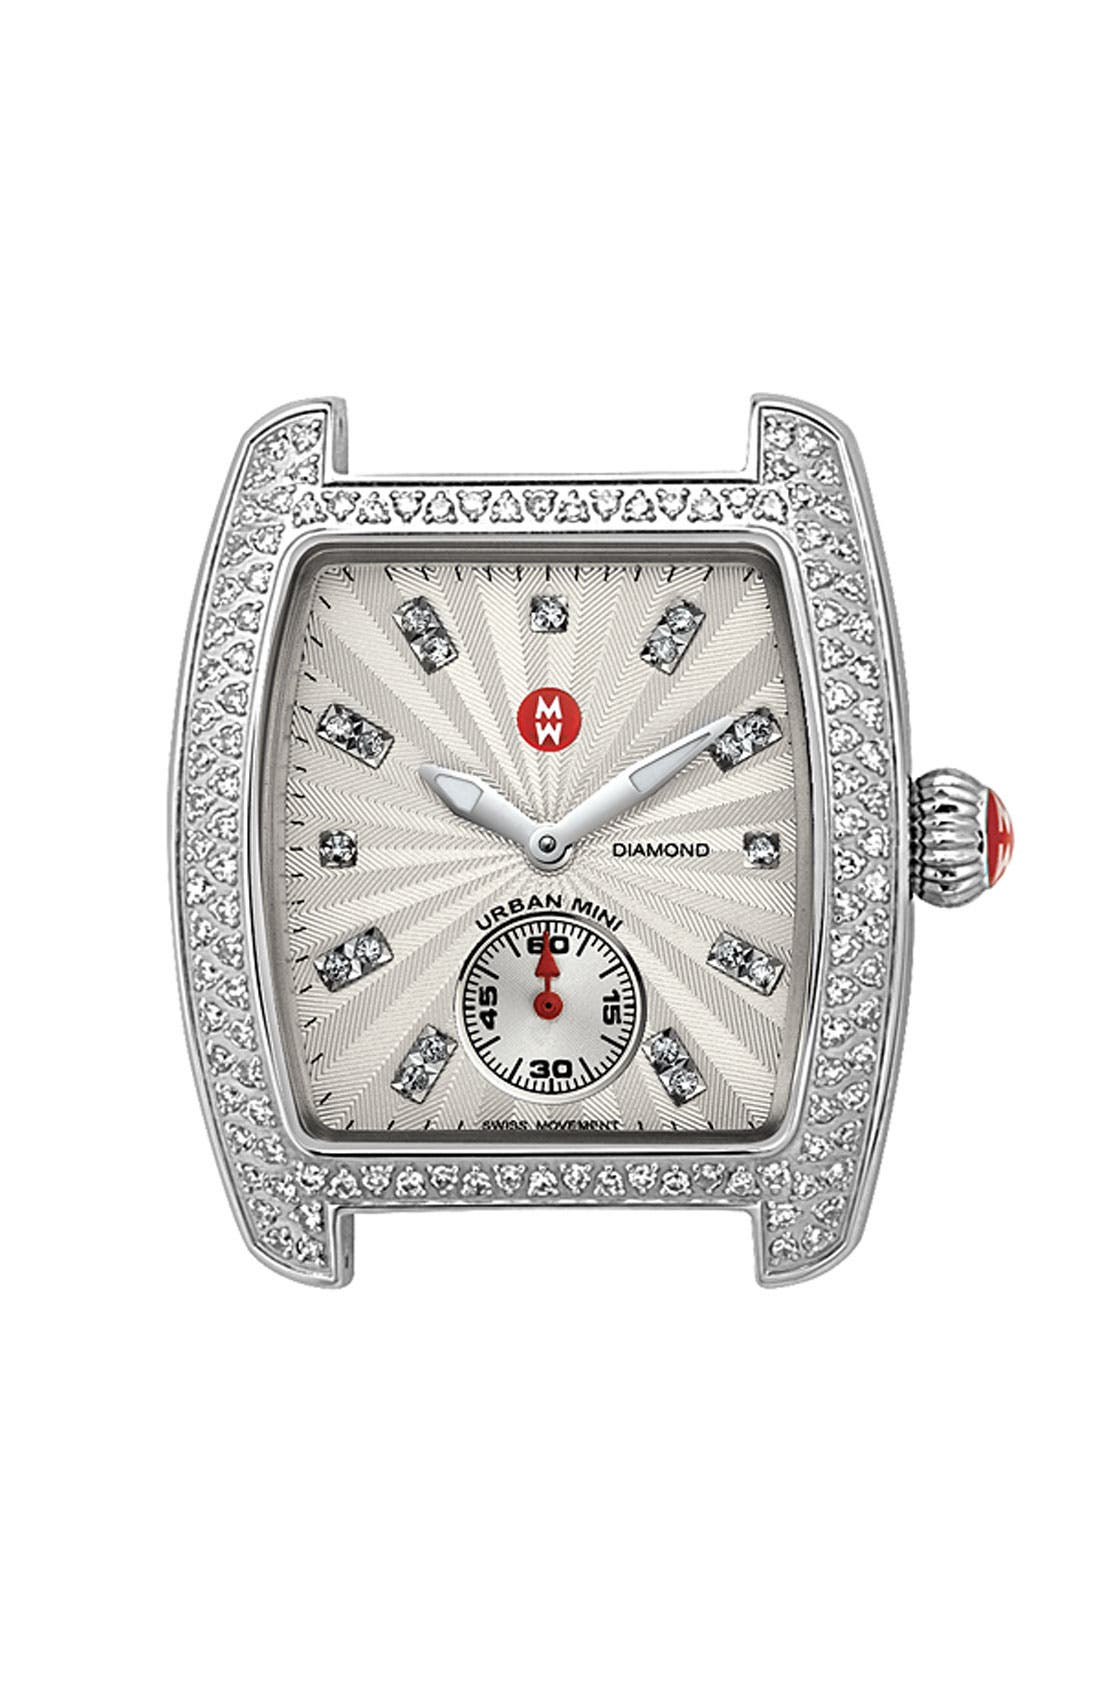 Alternate Image 1 Selected - MICHELE 'Urban Mini Diamond' Diamond Dial Customizable Watch